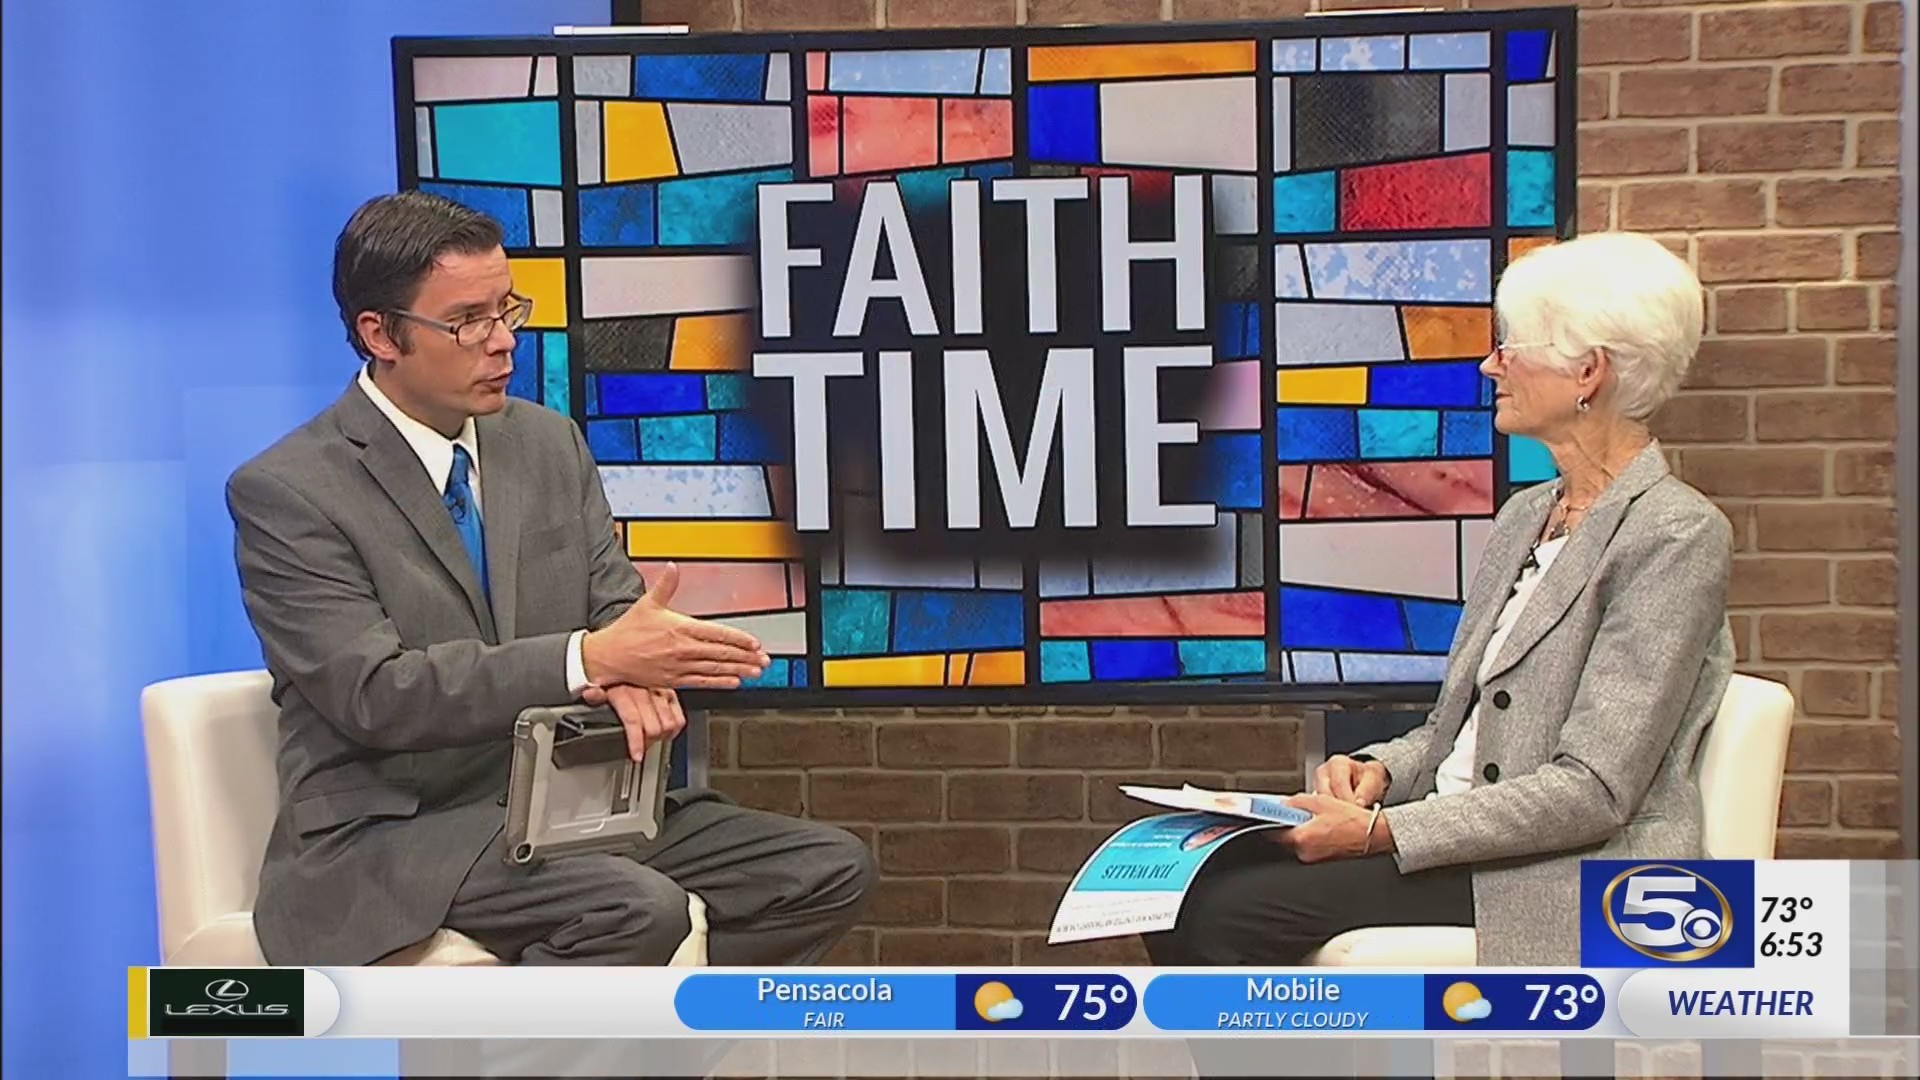 Faith_Time___Dill_Lecture_Series_0_20180909120153